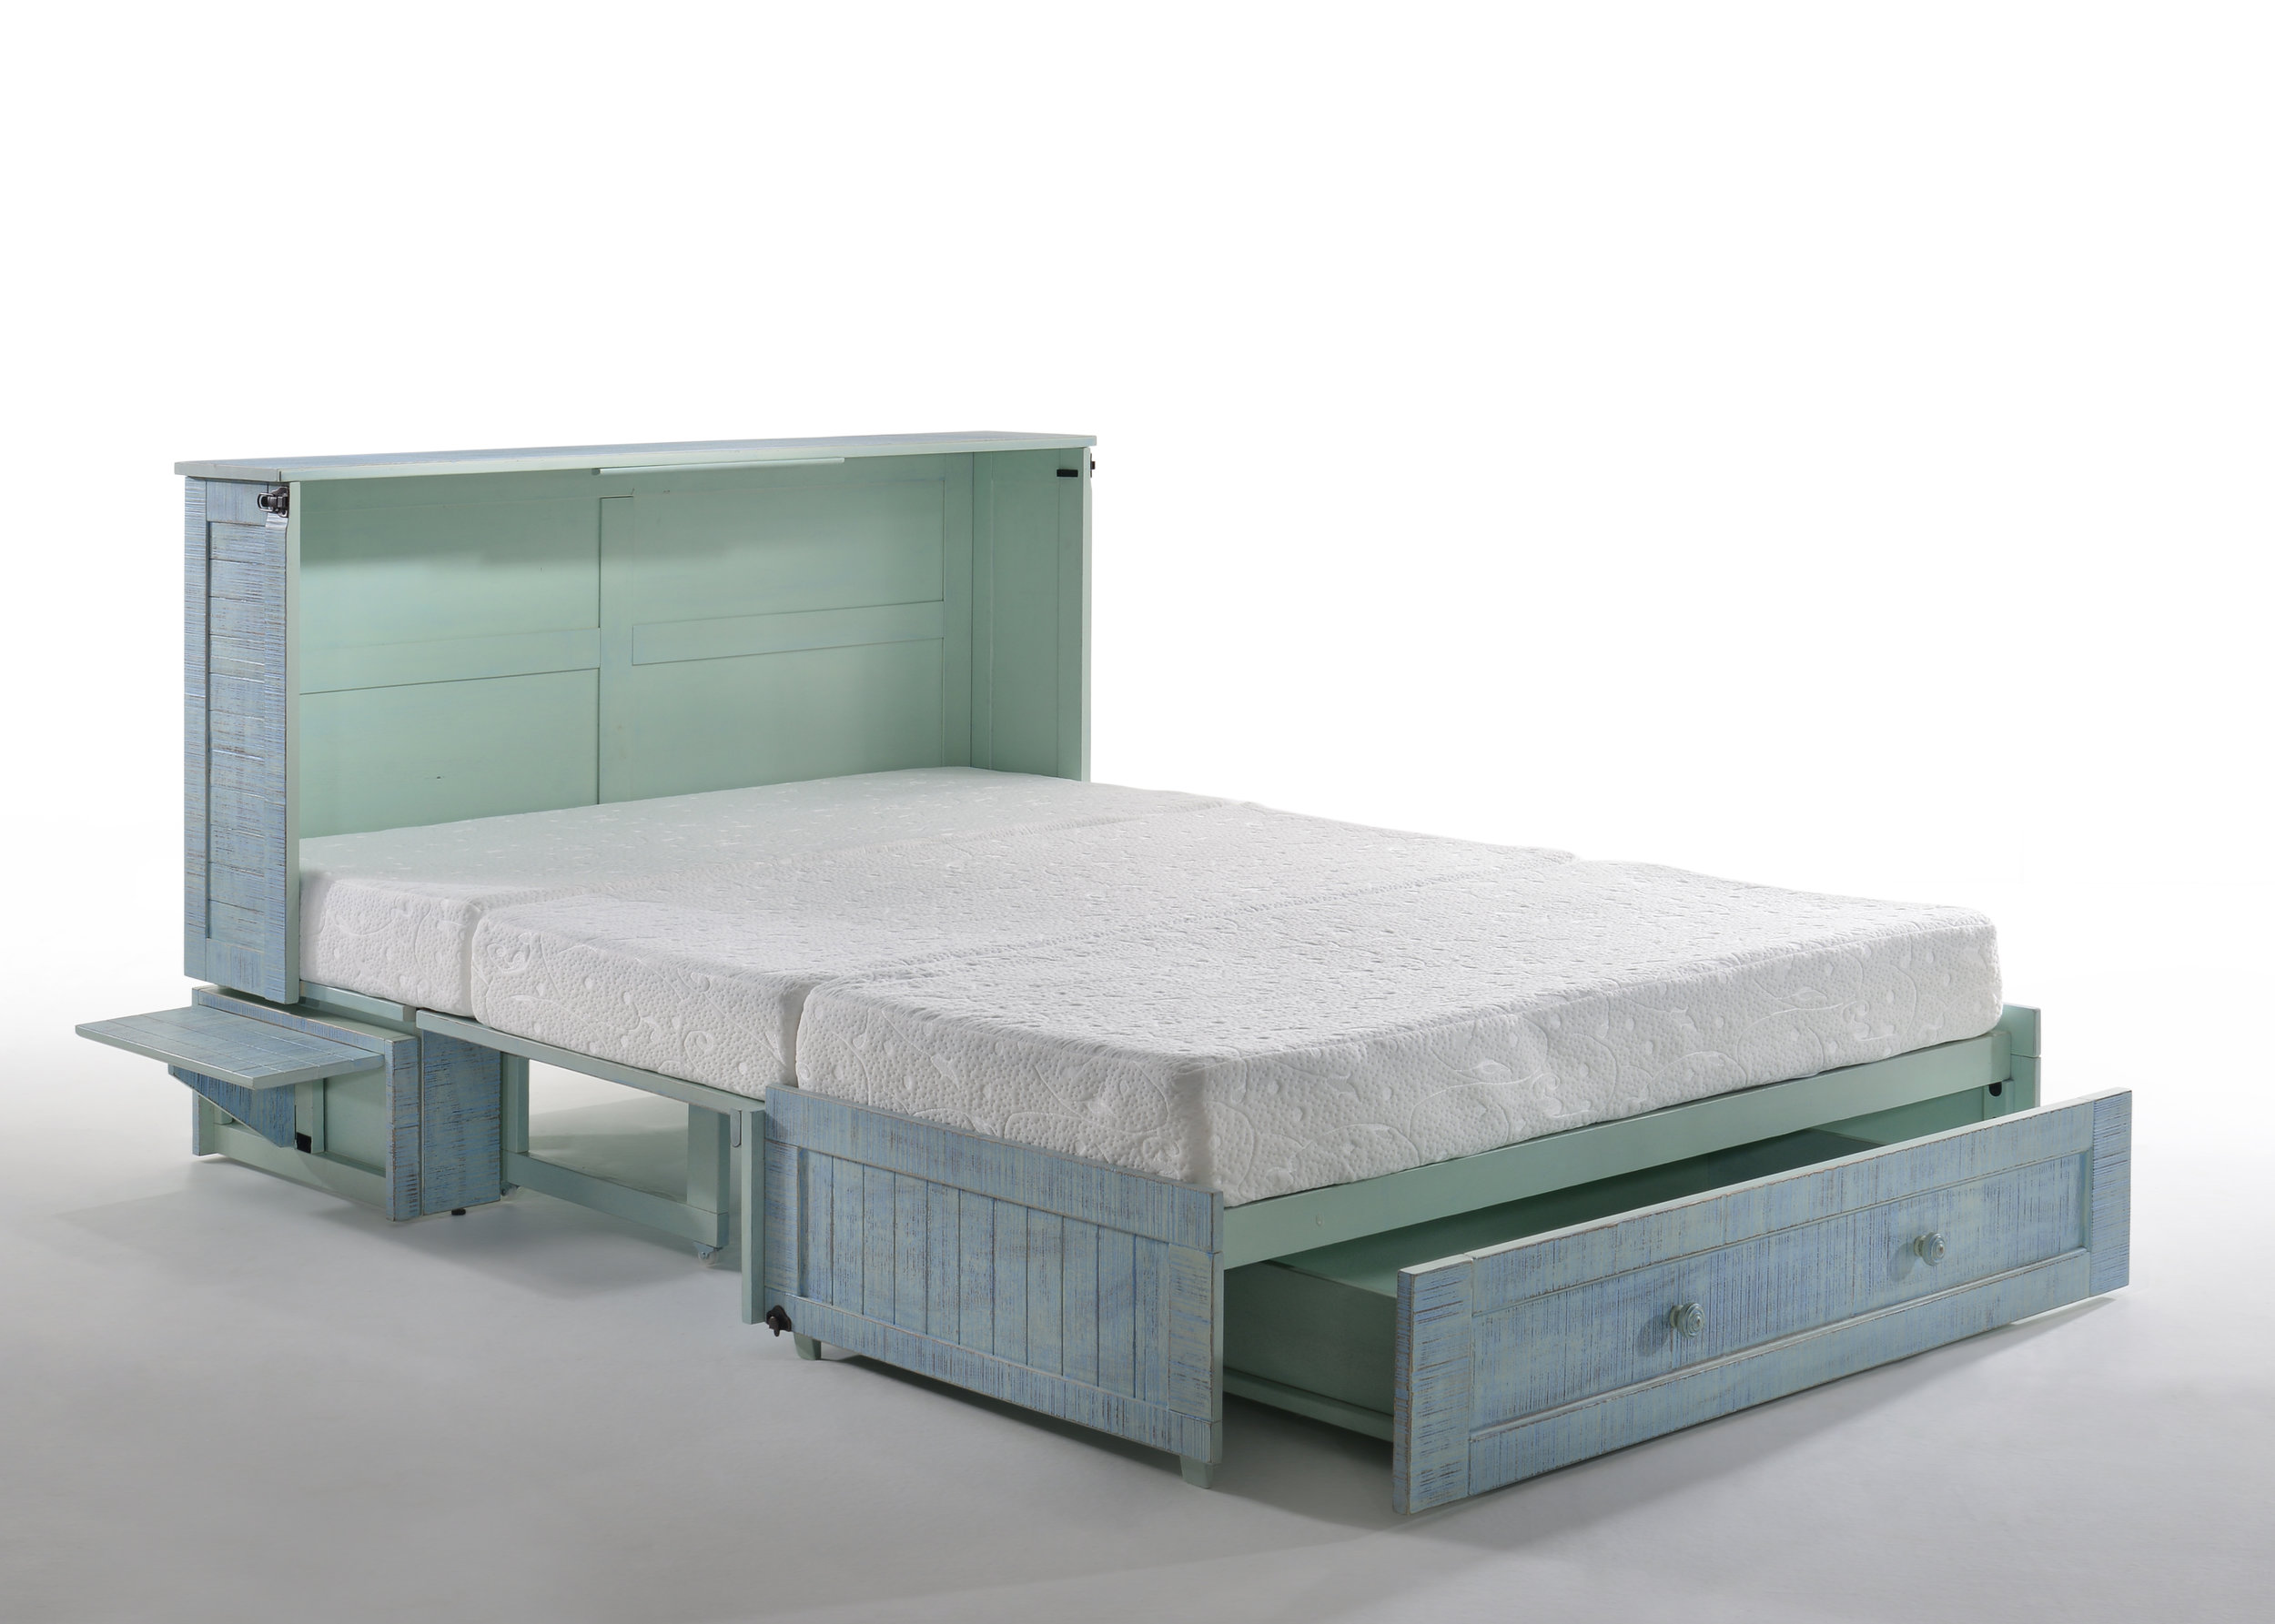 Poppy Murphy Cabinet Bed Skye with Drawer Opened & Tray Up.jpg